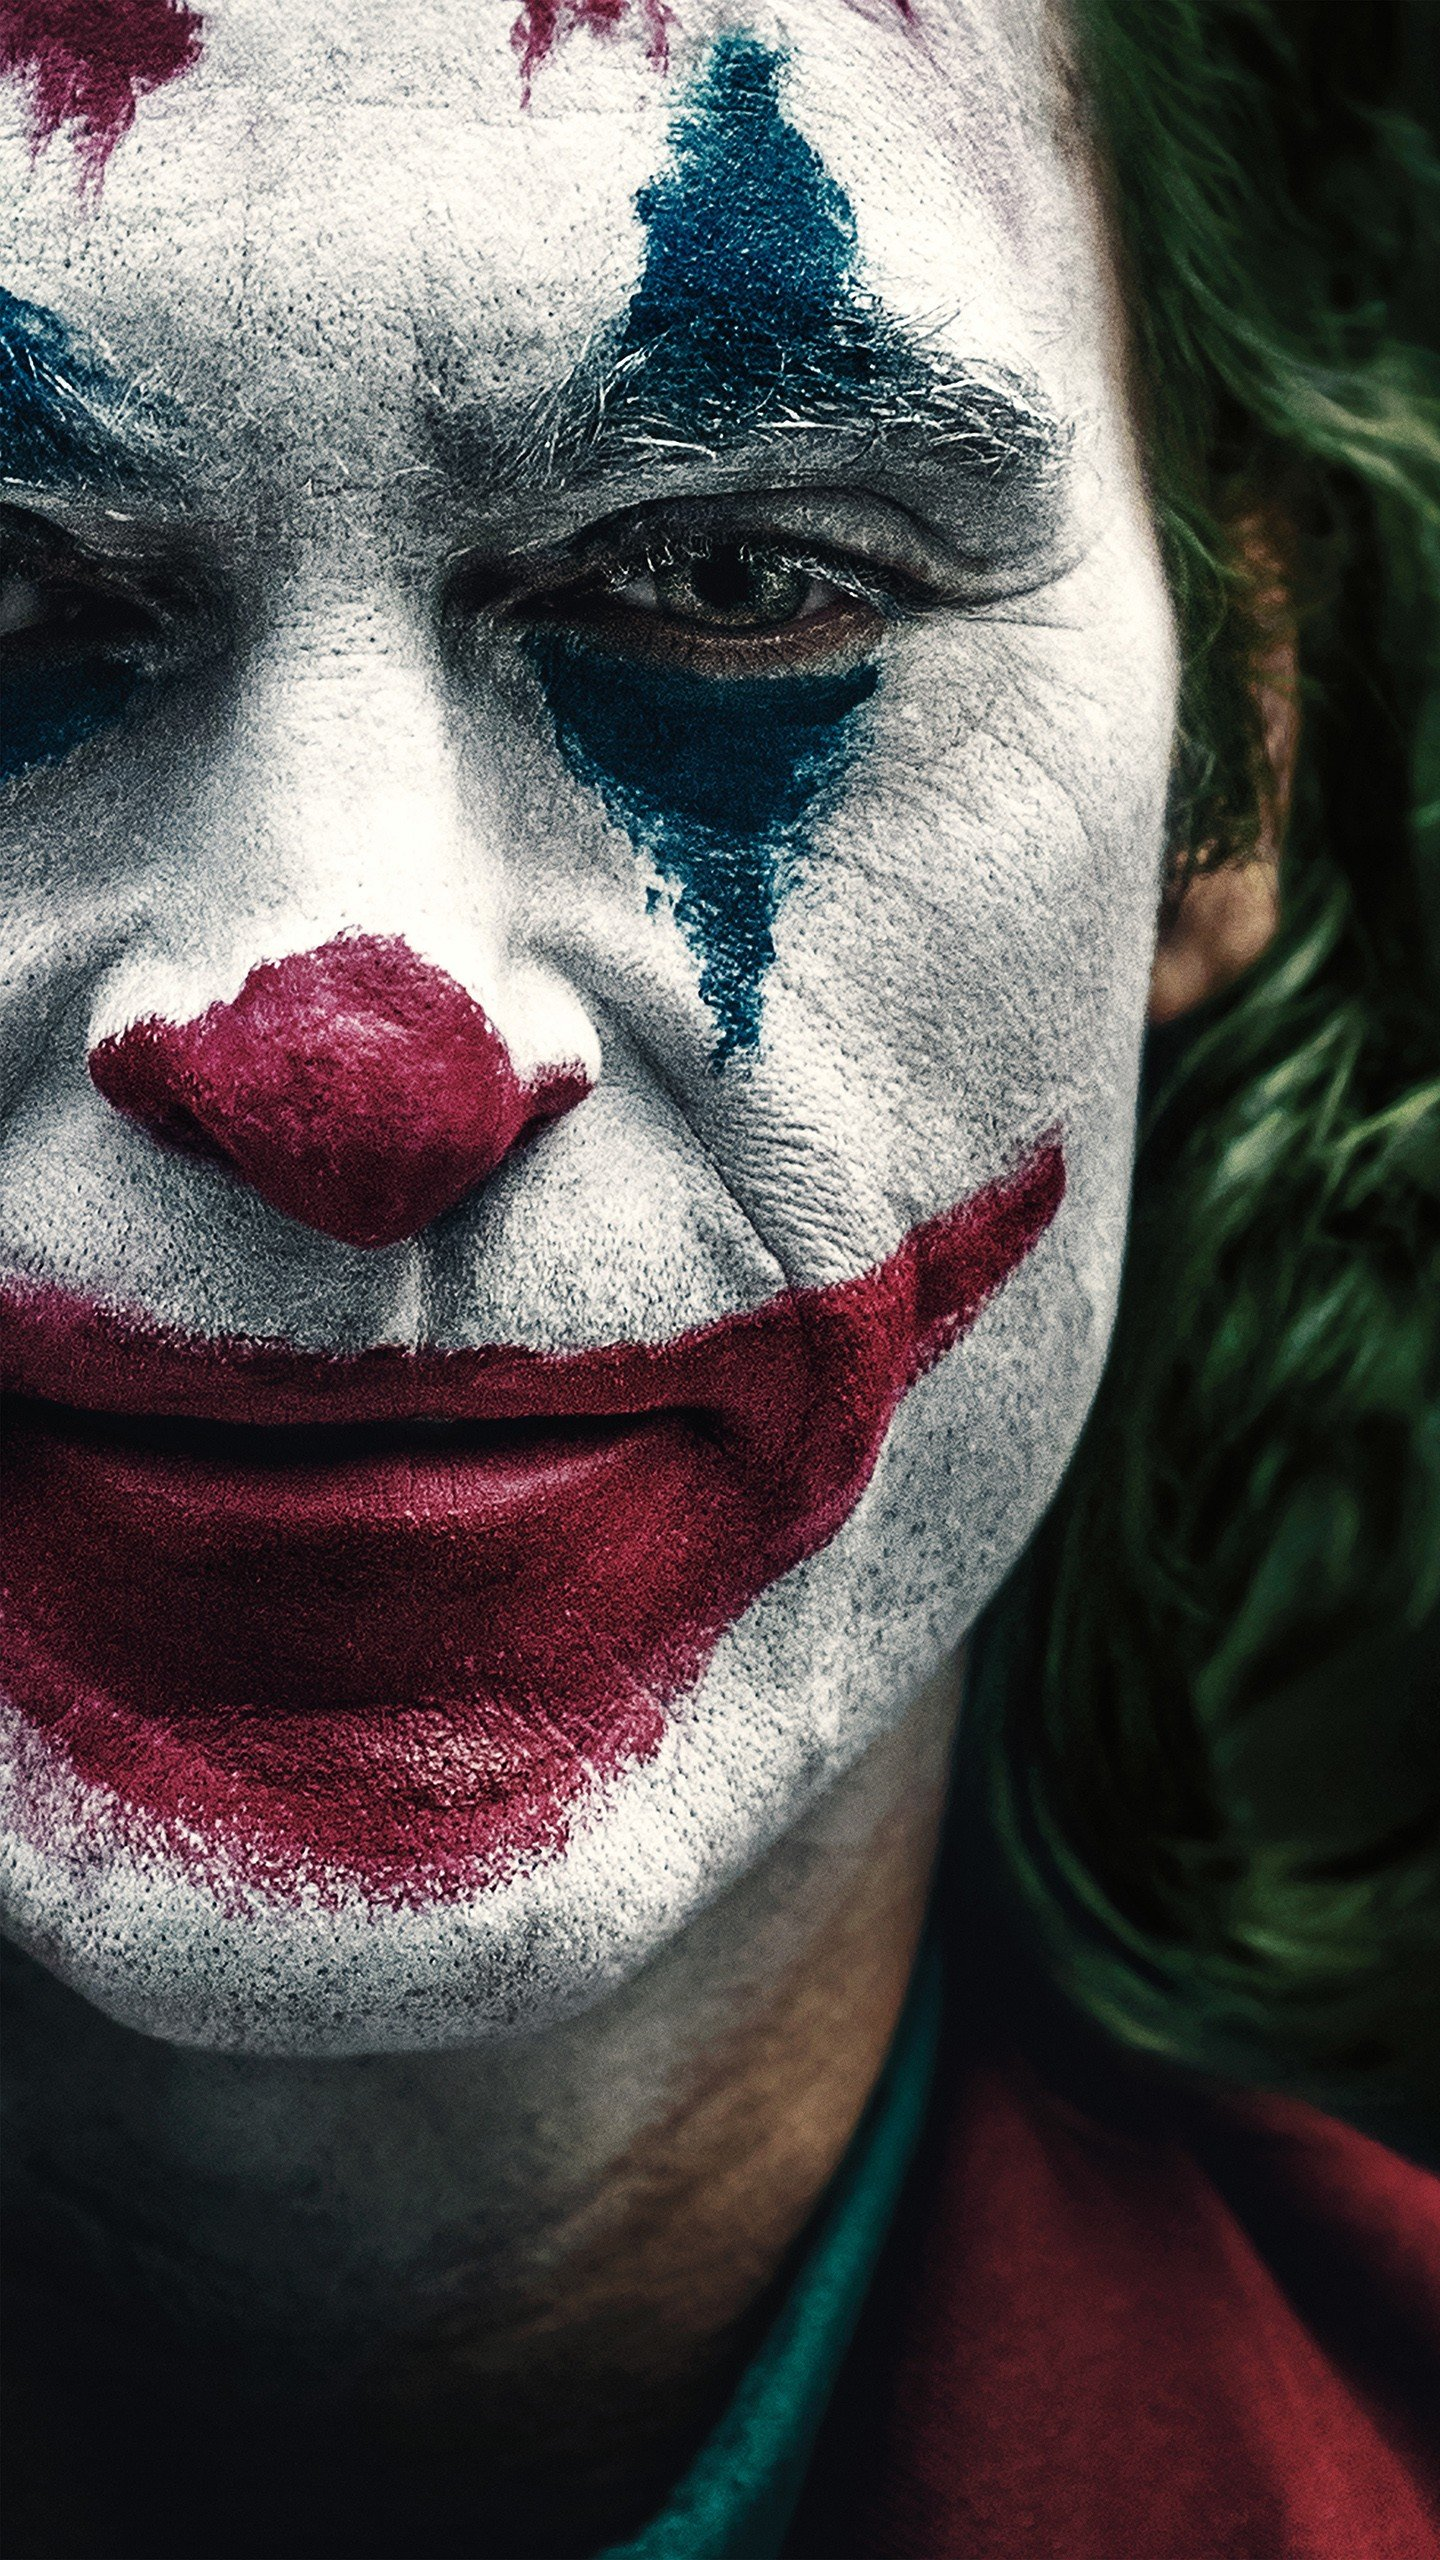 joker joaquin phoenix 4k 8k hd movie wallpapers android resolution iphone 2560 background 1280 ipad pro movies resolutions plus mobiles